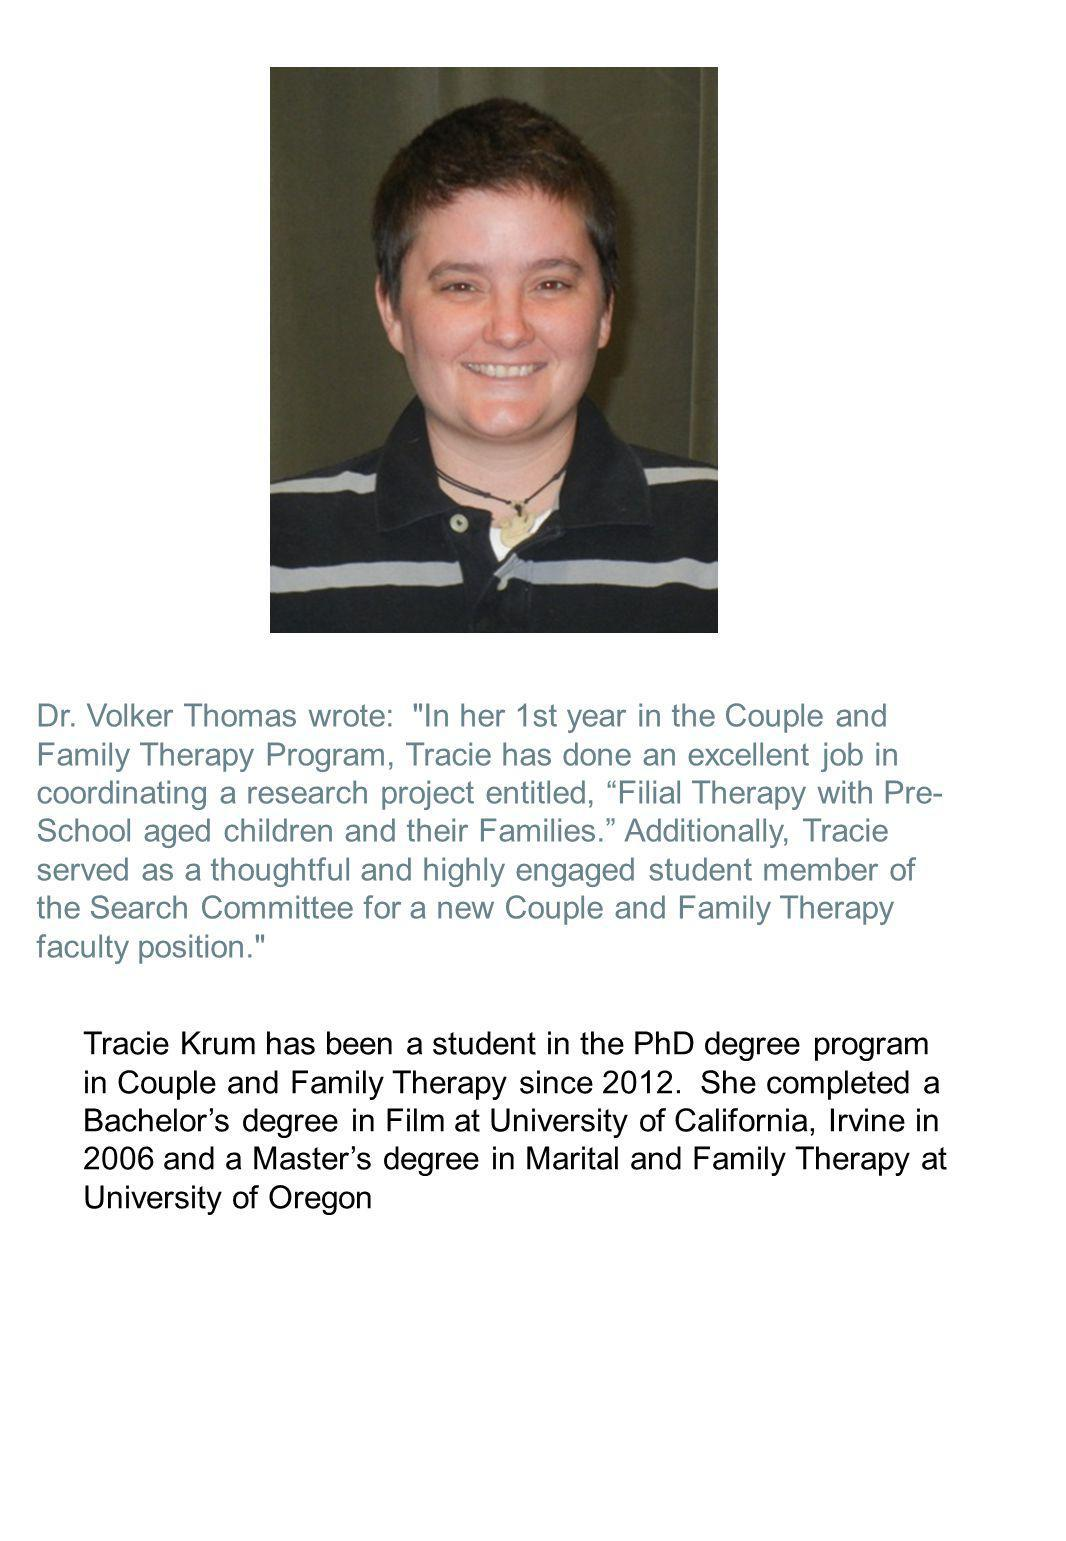 Dr. Volker Thomas wrote: In her 1st year in the Couple and Family Therapy Program, Tracie has done an excellent job in coordinating a research project entitled, Filial Therapy with Pre-School aged children and their Families. Additionally, Tracie served as a thoughtful and highly engaged student member of the Search Committee for a new Couple and Family Therapy faculty position.